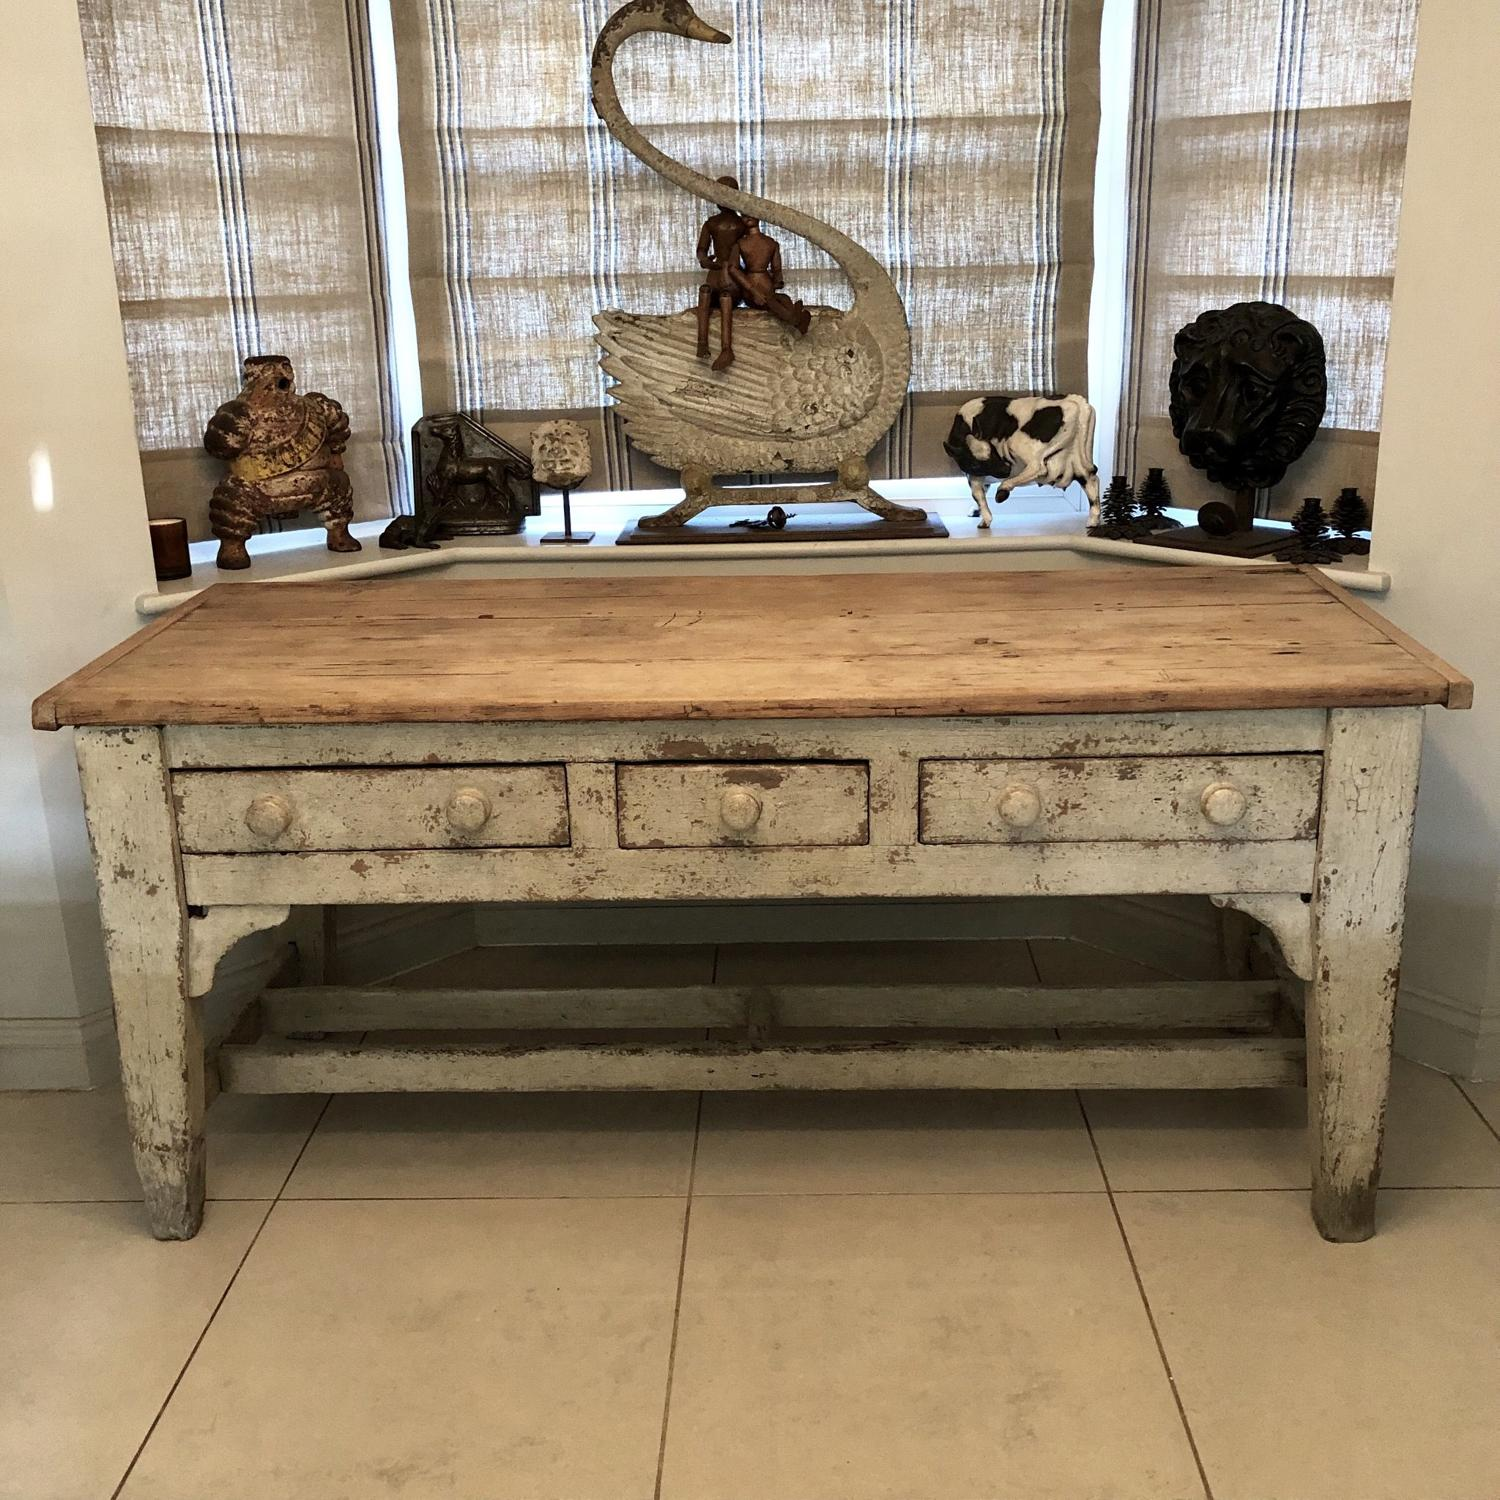 A 19thC Dairy Table